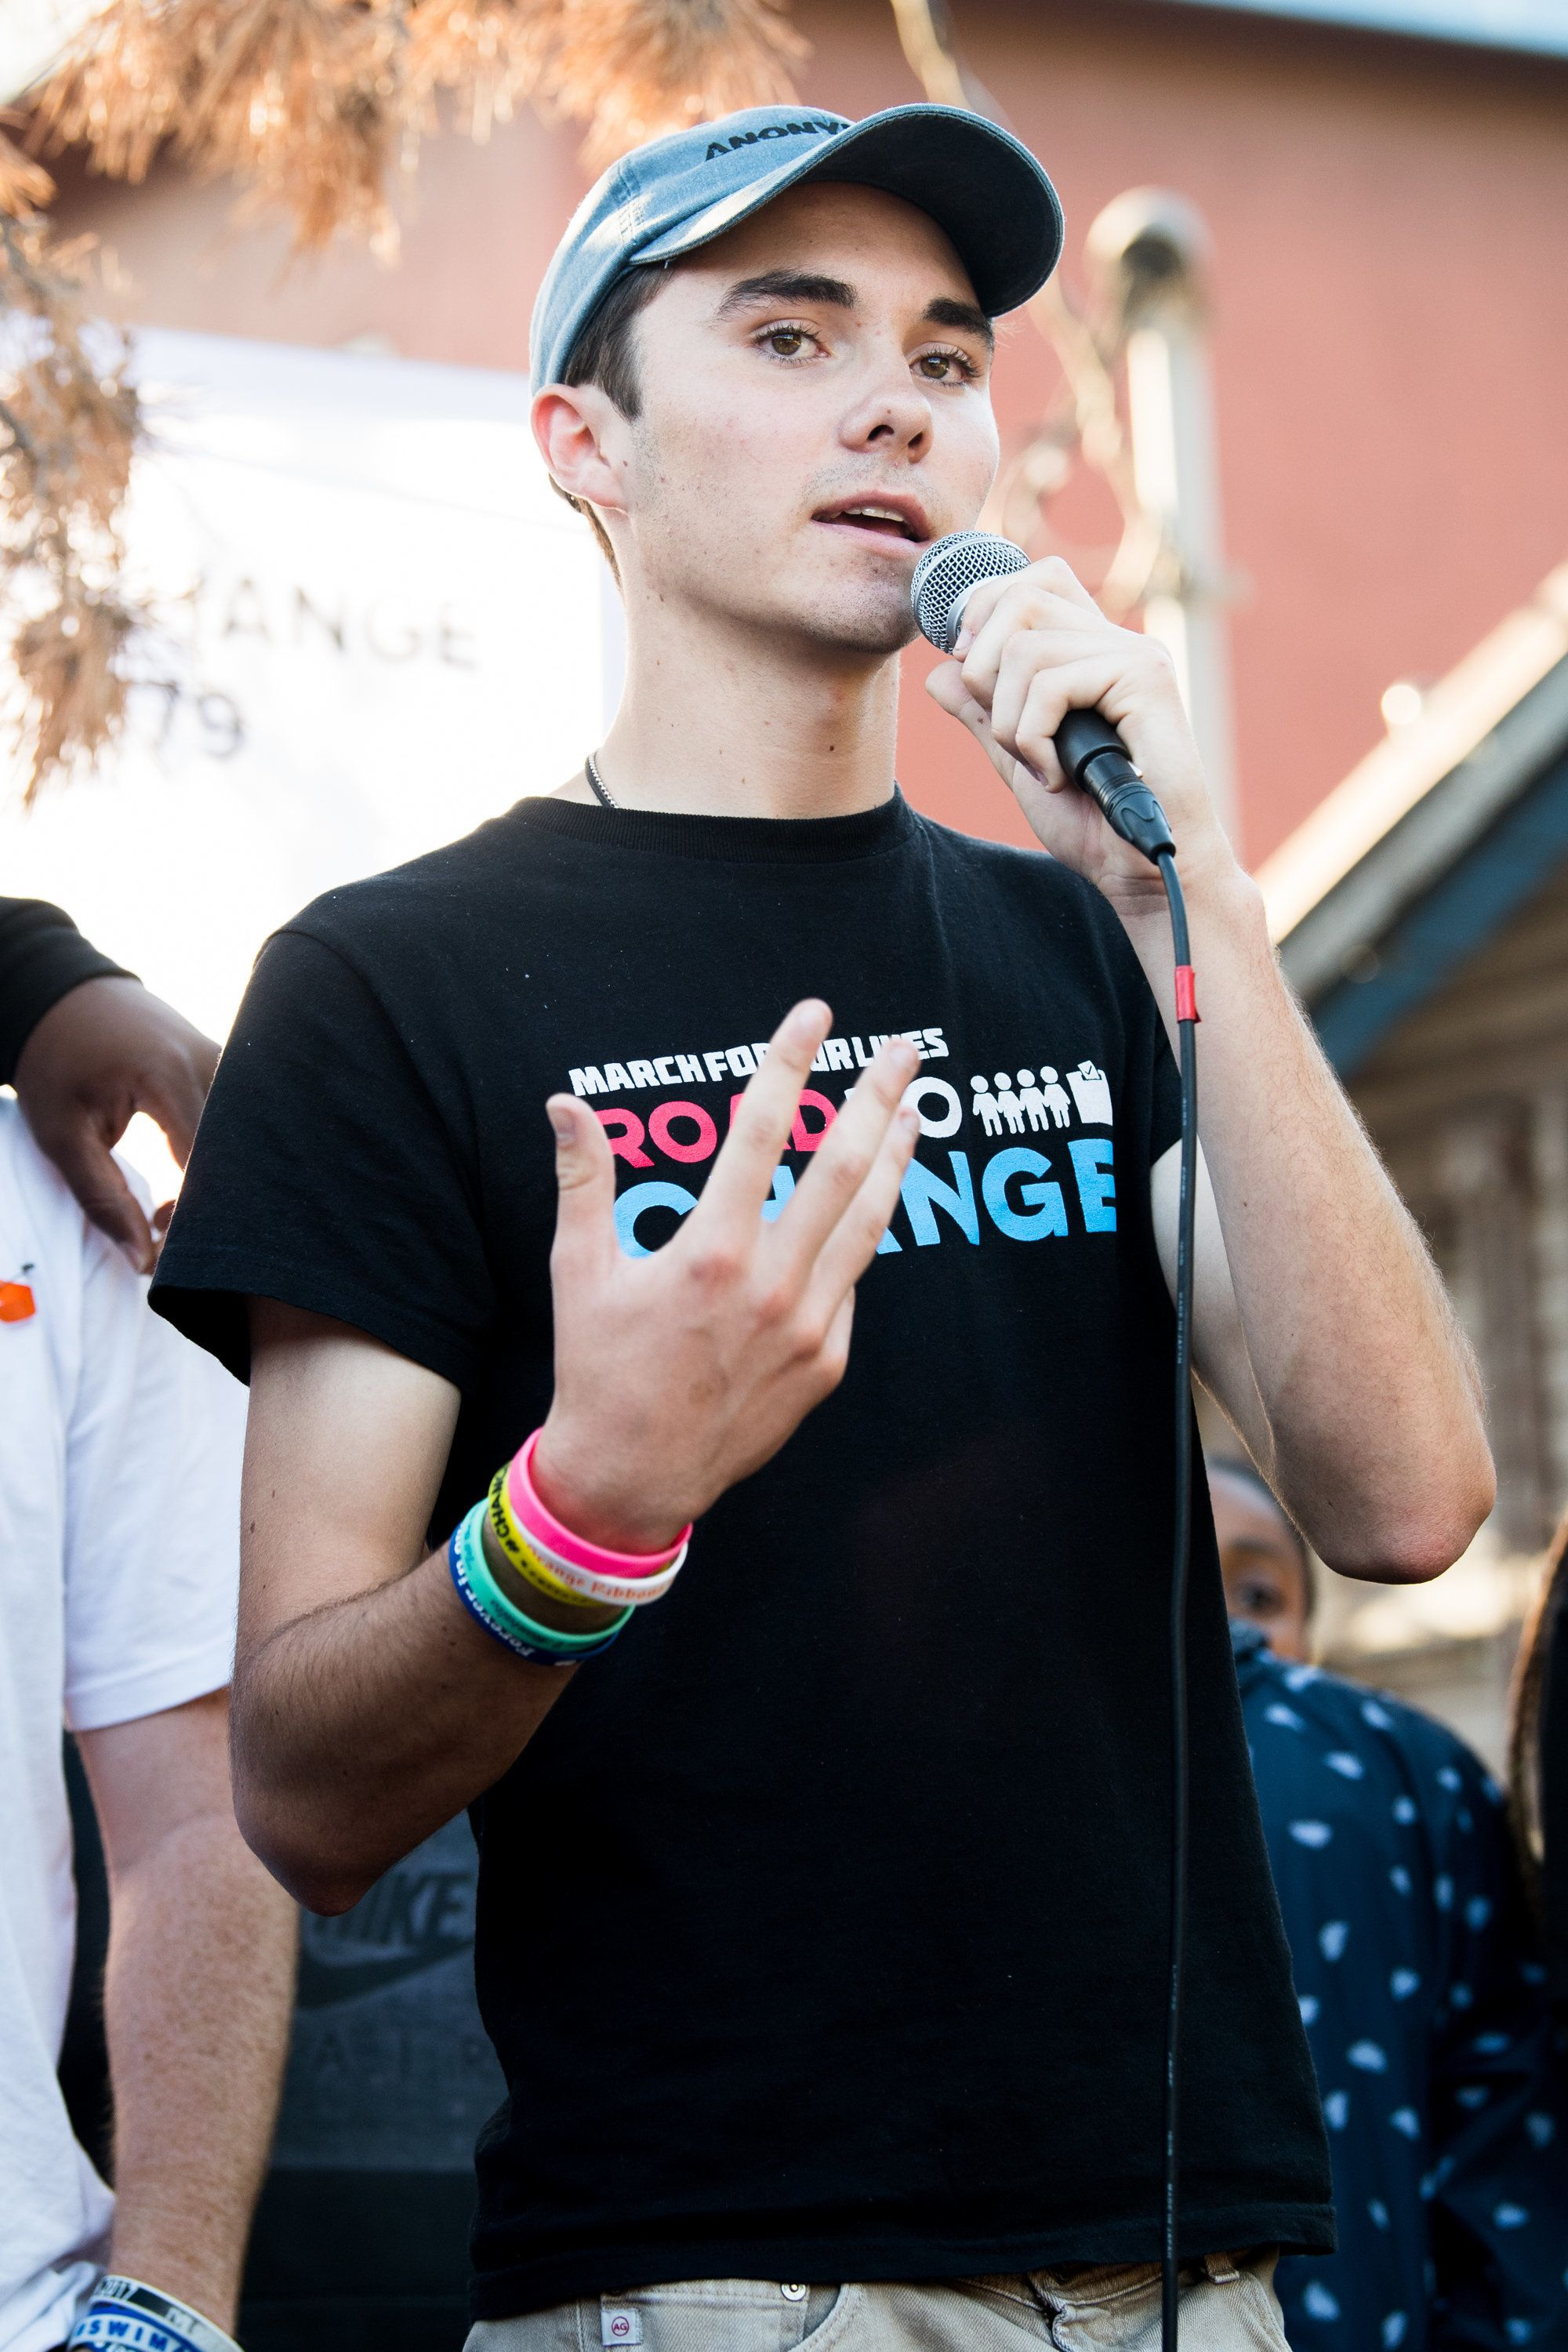 LOS ANGELES, CA - JULY 20:  Parkland shooting survivor and activist David Hogg attends 'Women's March Los Angeles hosts March For Our Lives LA: Road to Change & the Parkland survivors & activists' at St. Elmo's Village on July 20, 2018 in Los Angeles, California.  (Photo by Emma McIntyre/Getty Images)